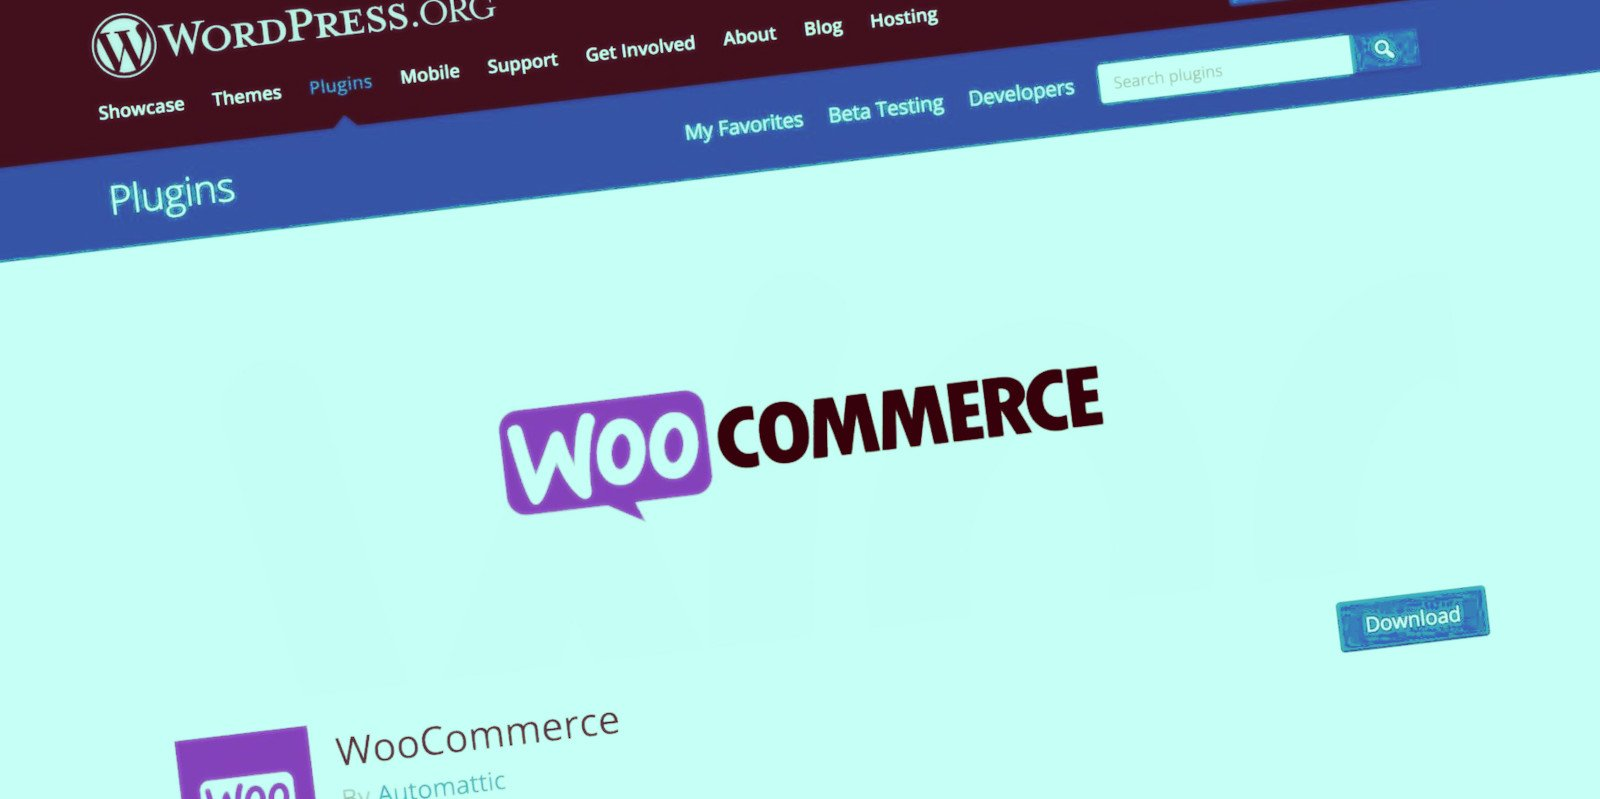 WooCommerce updated to fix unauthenticated SQL injection